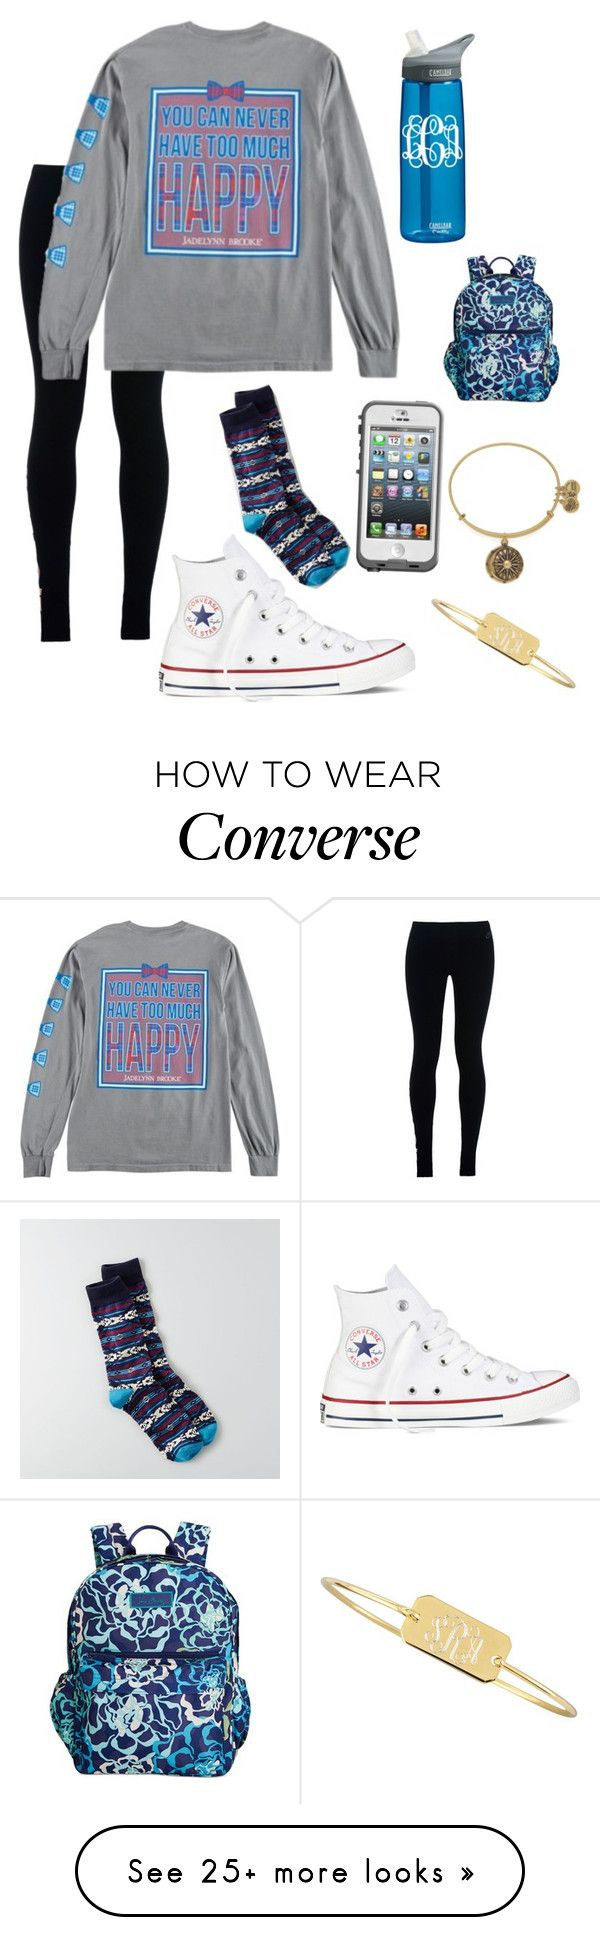 """Untitled #68"" by samhainessss on Polyvore featuring NIKE, Converse, American Eagle Outfitters, Sarah Chloe, LifeProof, Alex and Ani, CamelBak, Vera Bradley, women's clothing and women's fashion"